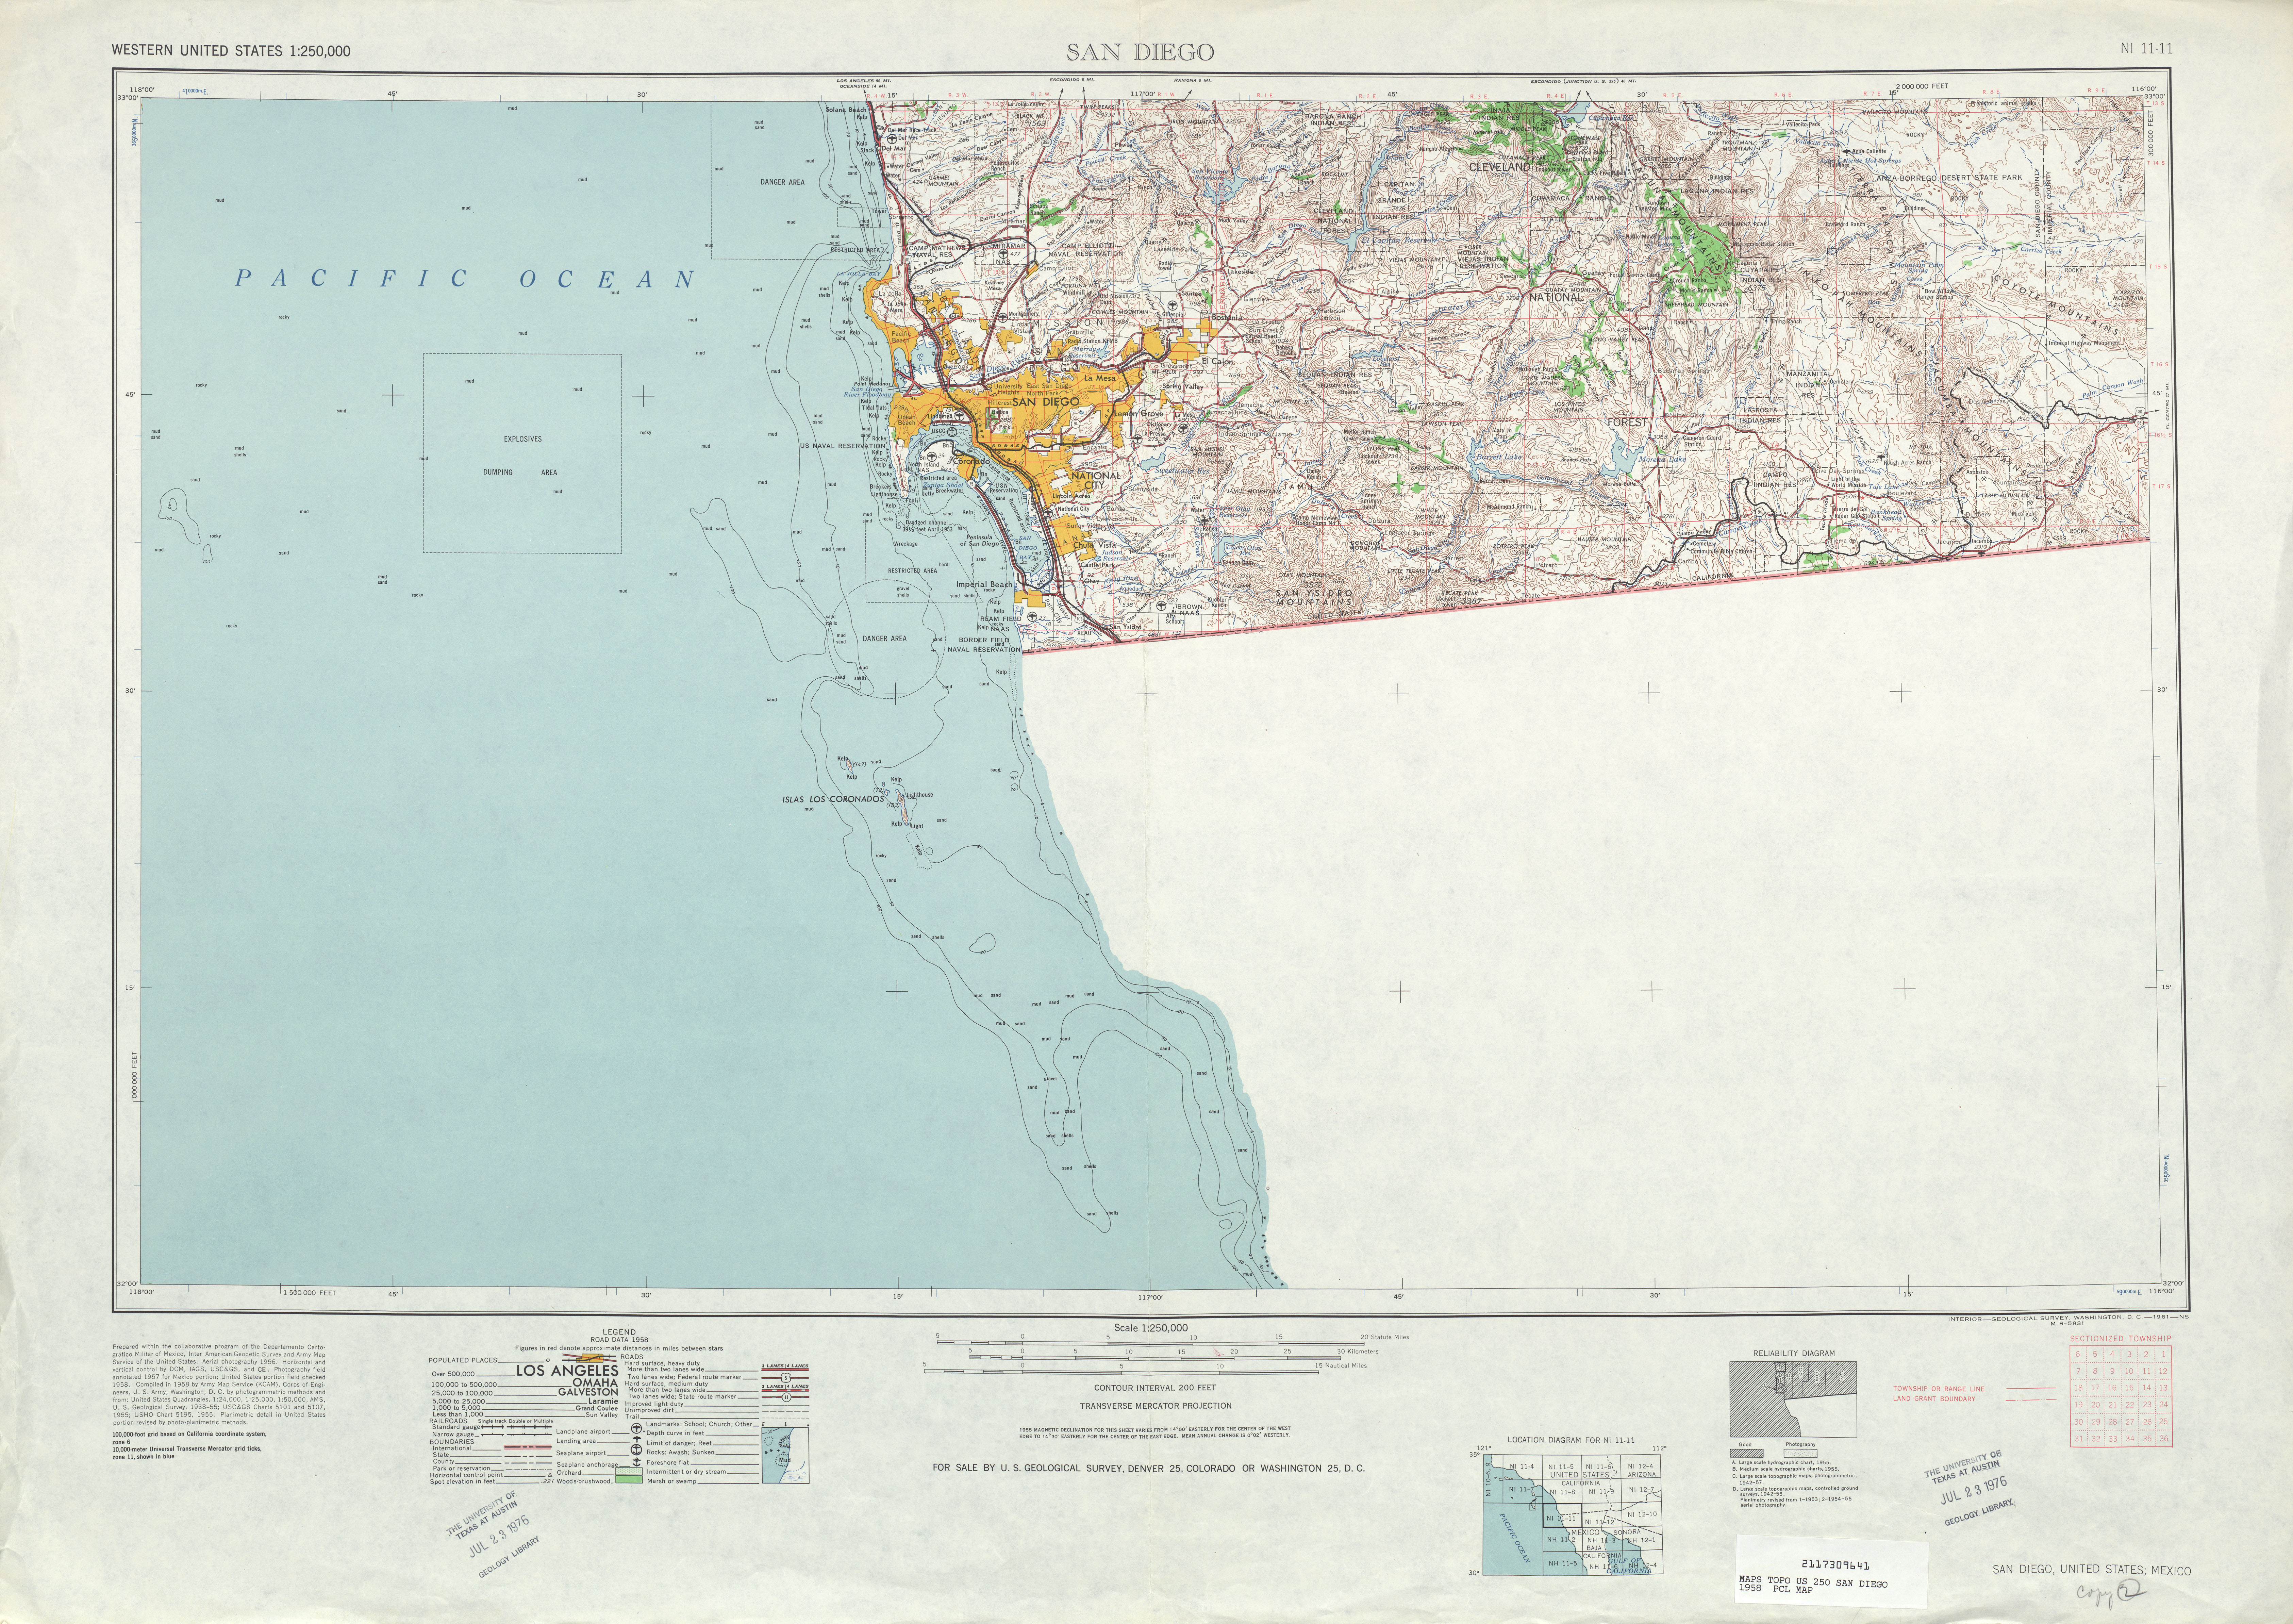 San Diego Topographic Map Sheet, United States 1958